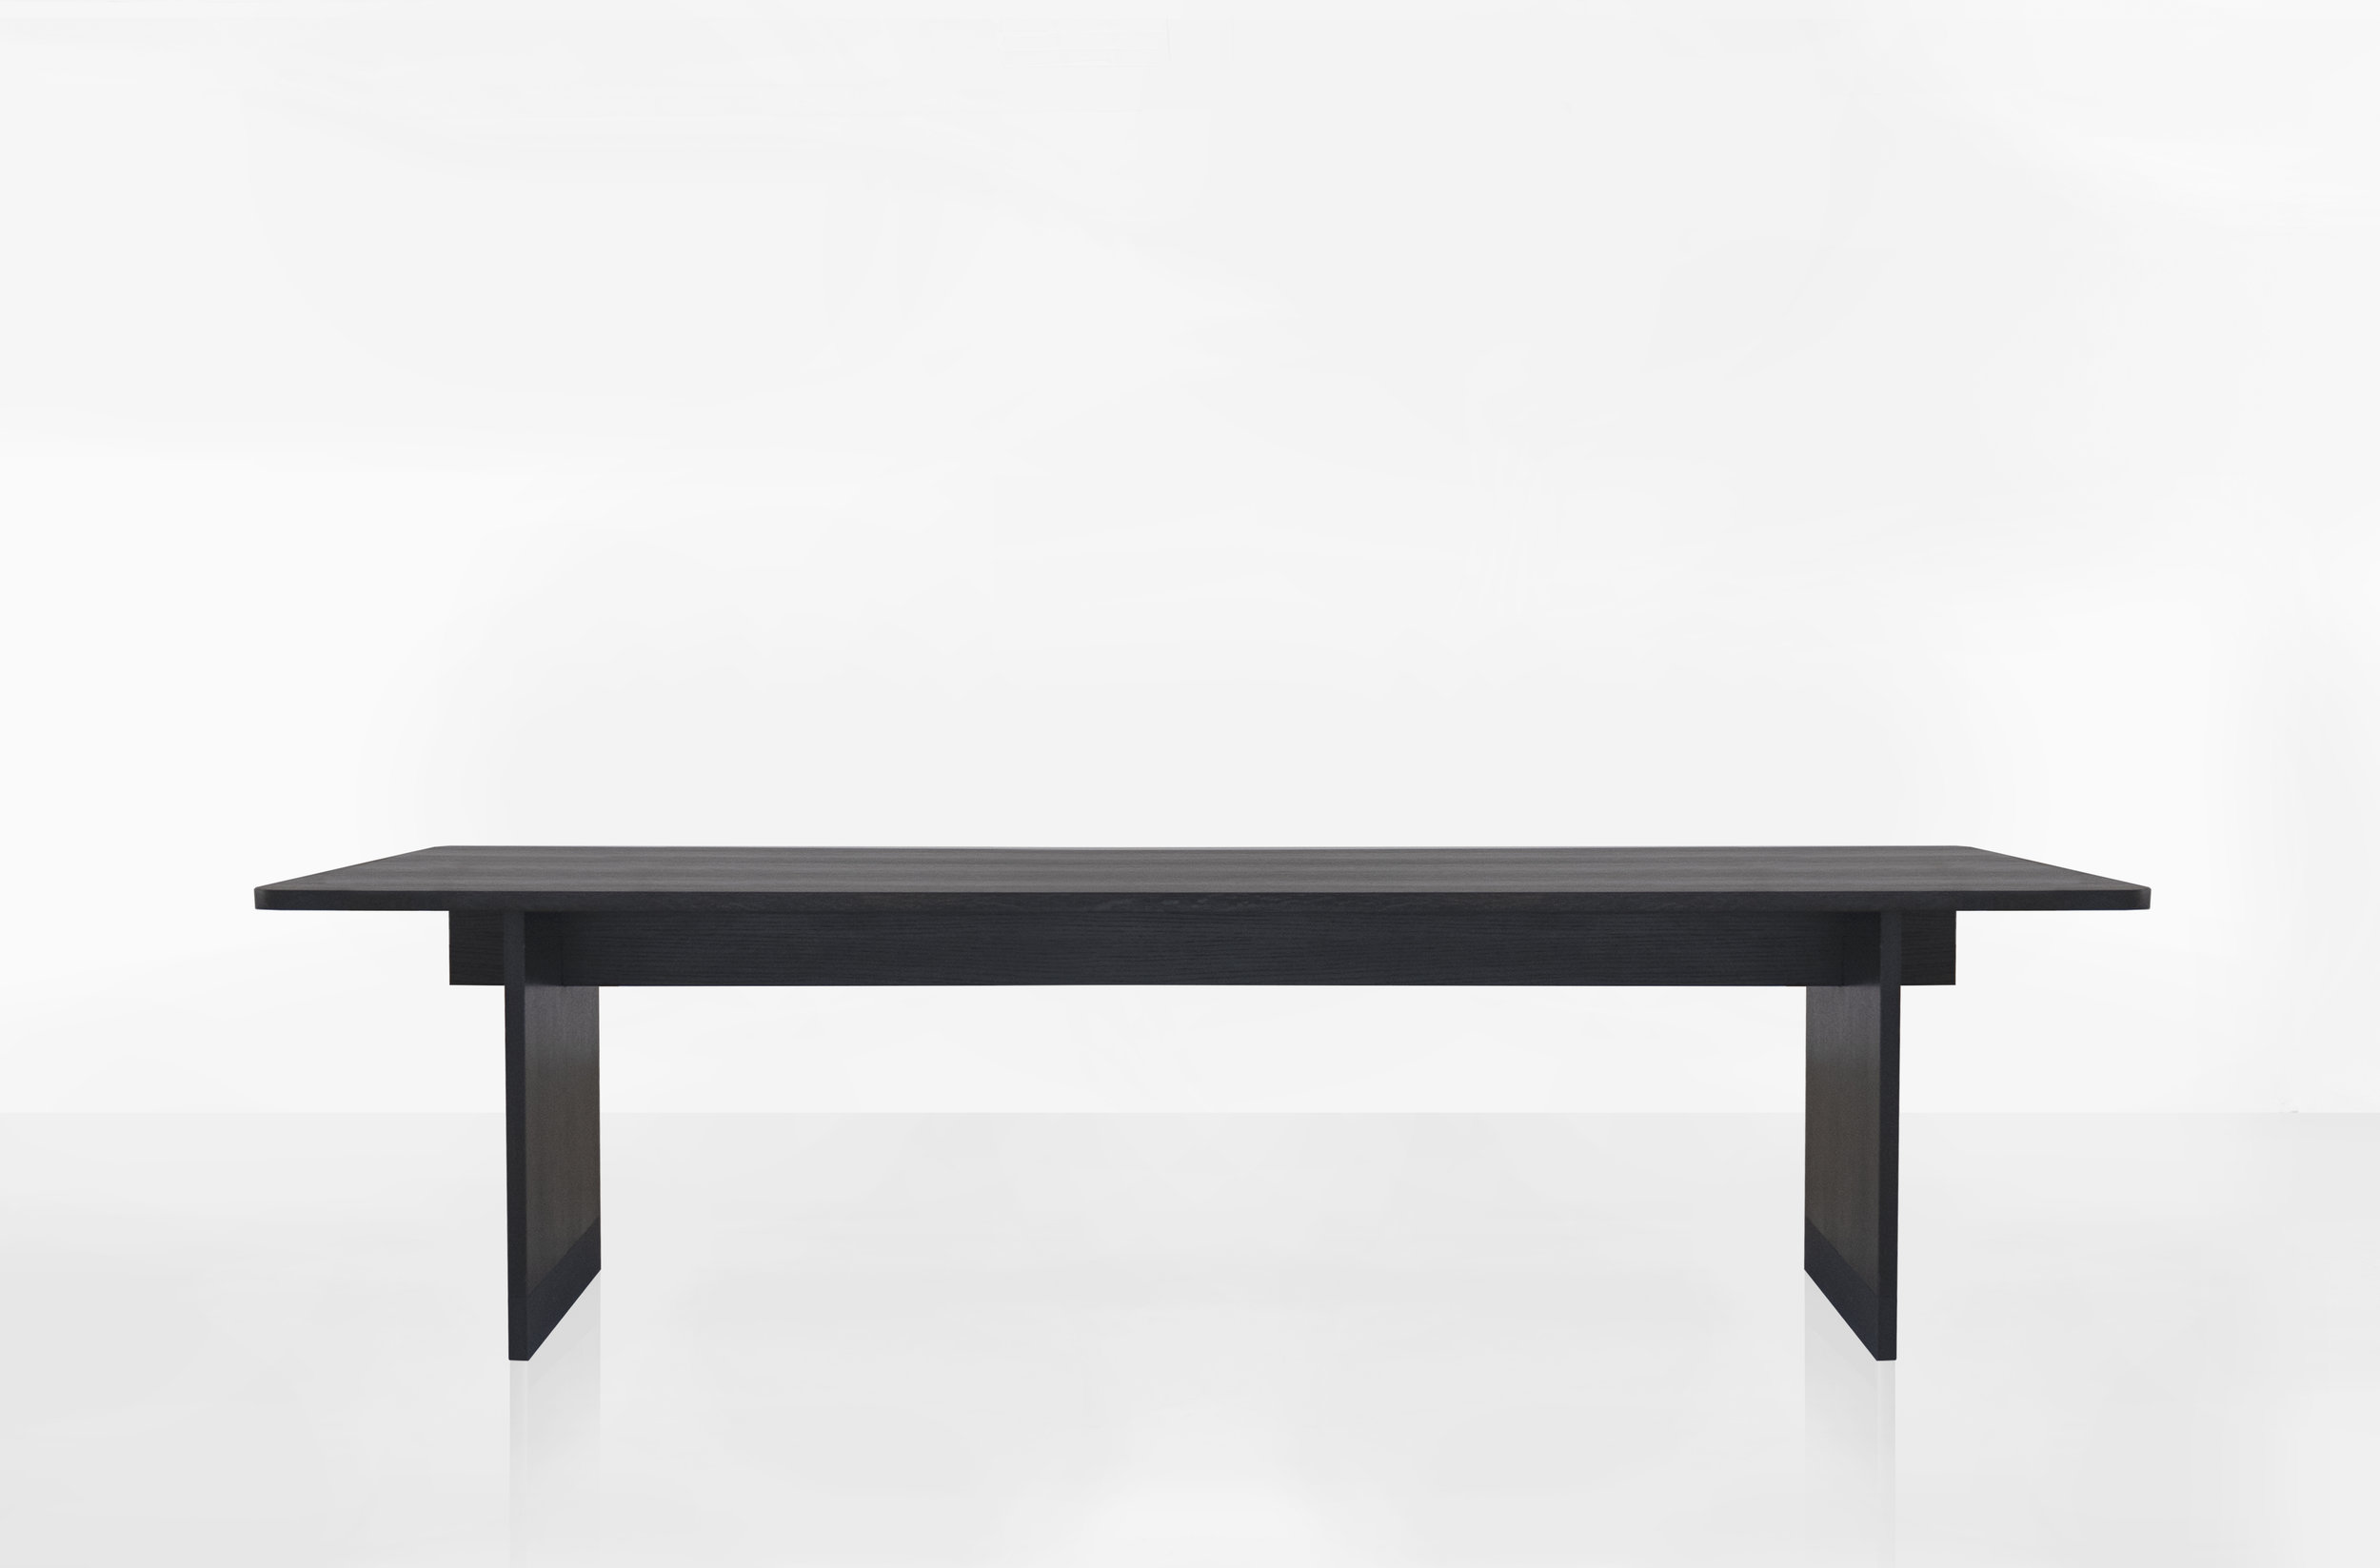 Faure Table DTLC0153